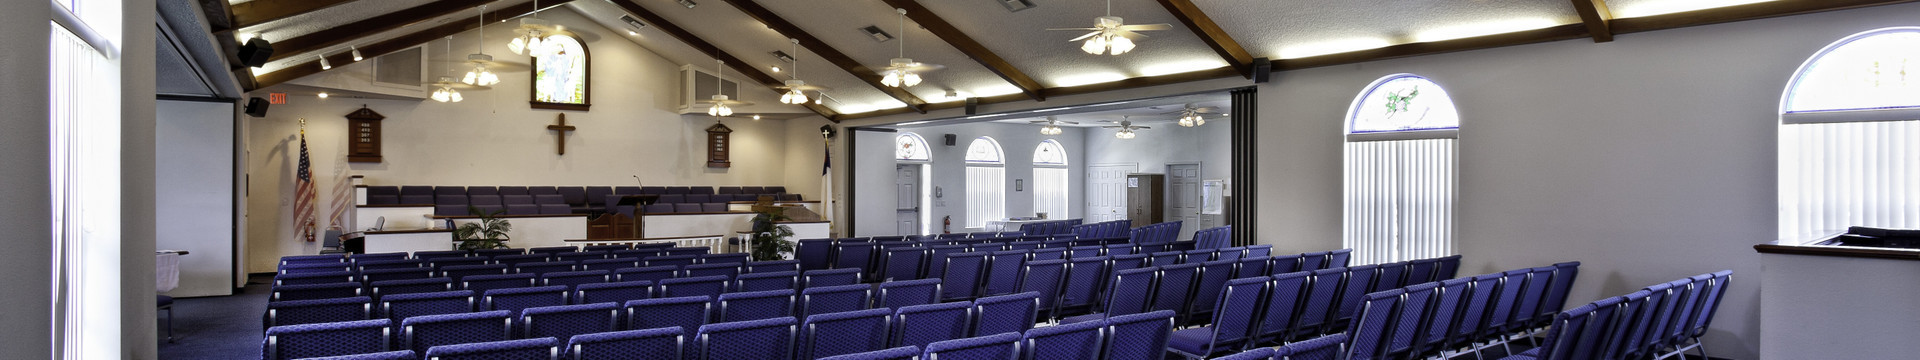 Unique Religious Retreat Group Rates In Florida | Church